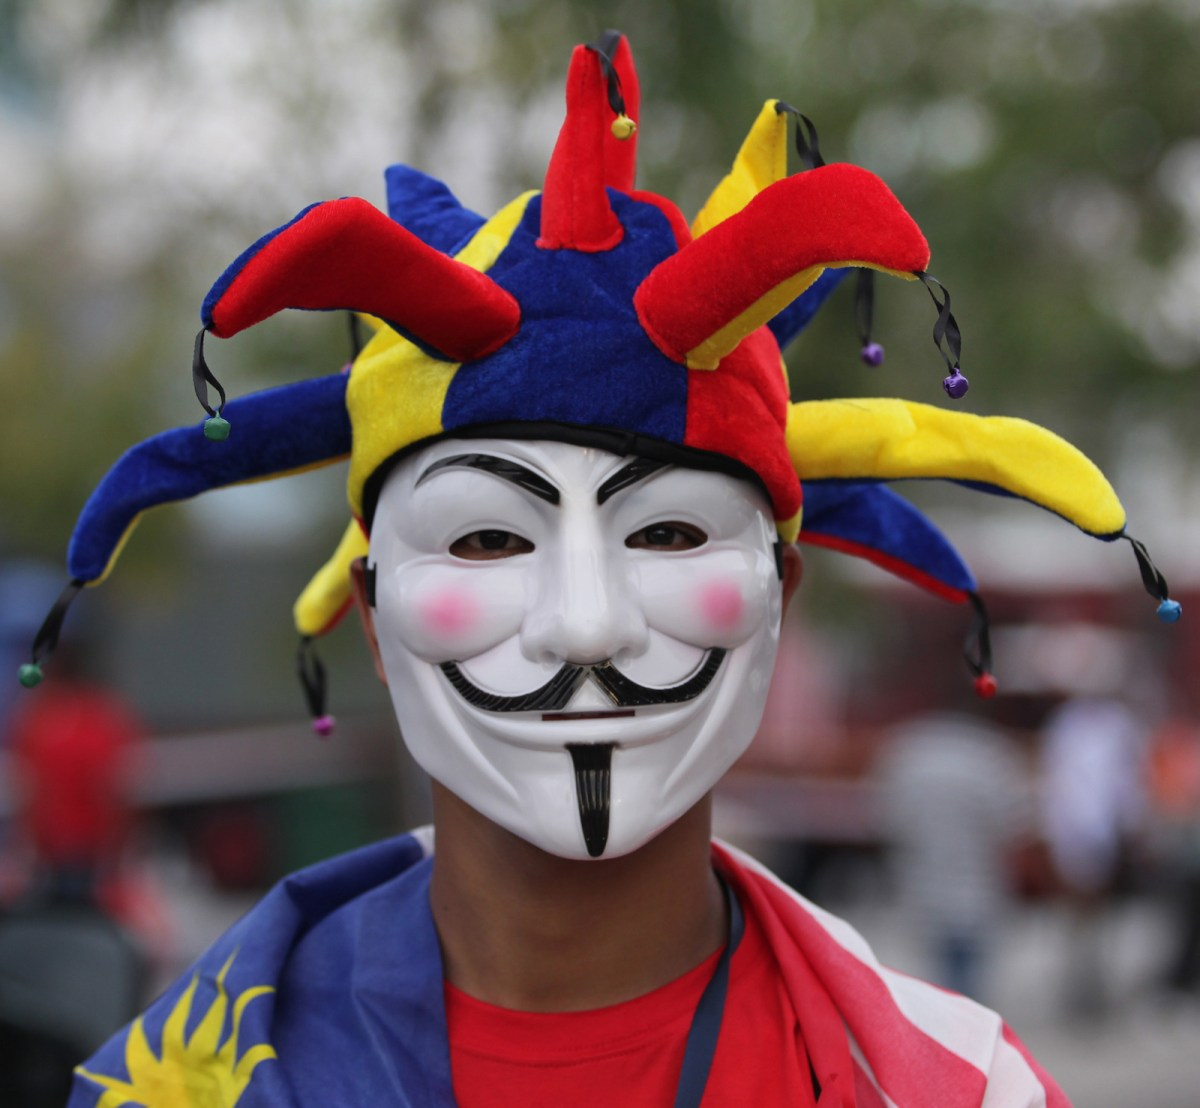 A Malaysian youth wears a Guy Fawkes mask and jester's hat during a rally to celebrate the country's Independence Day in a file photo. Photo: AFP/Mohd Rasfan